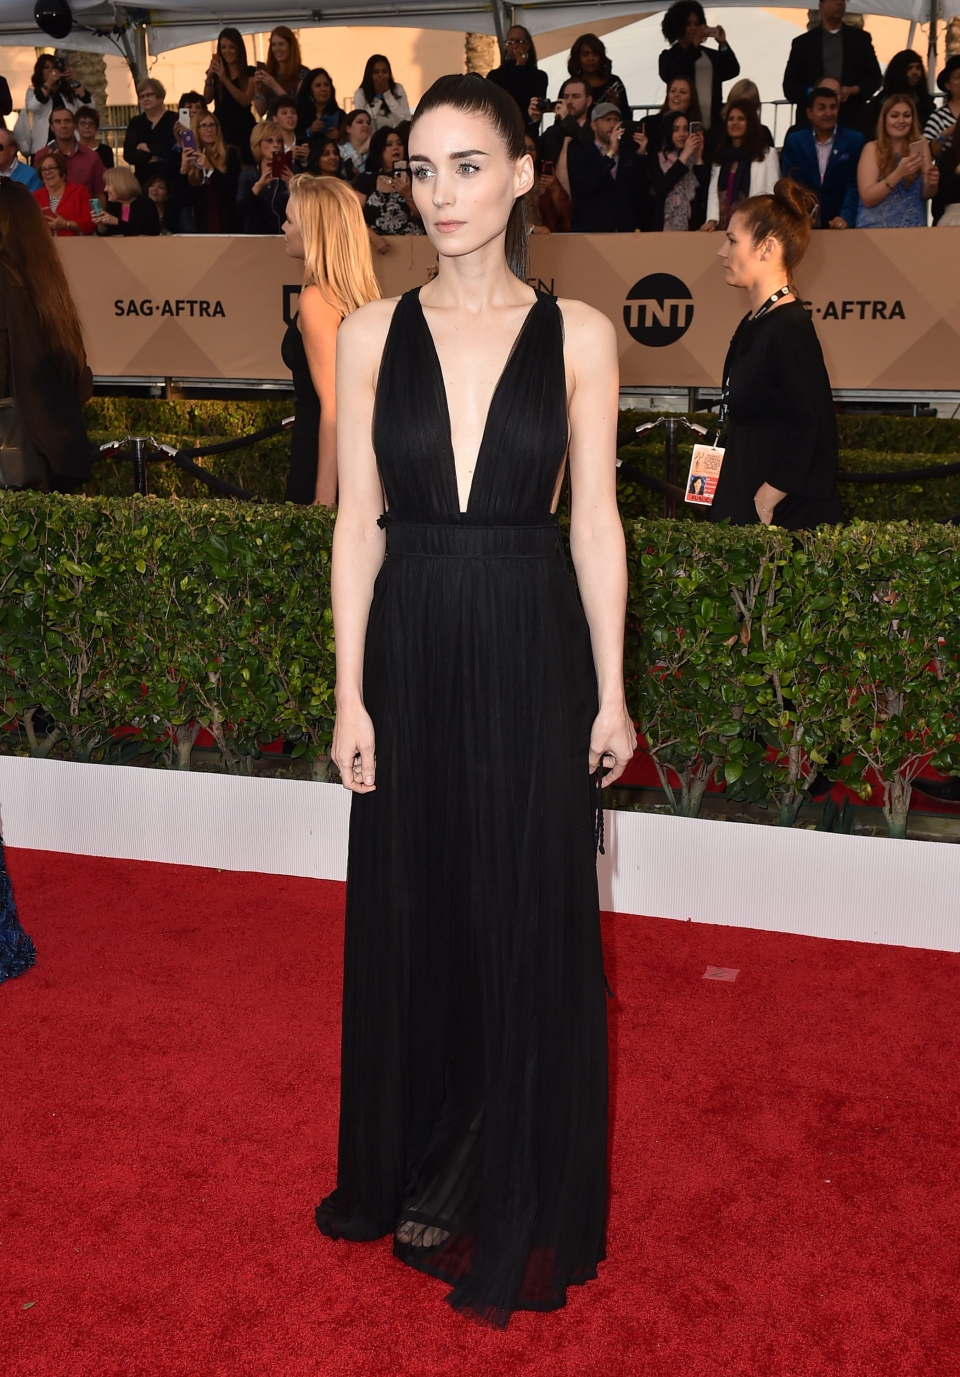 Rooney Mara arrives at the 22nd annual Screen Actors Guild Awards at the Shrine Auditorium & Expo Hall on Saturday, Jan. 30, 2016, in Los Angeles. (Photo by Jordan Strauss / Invision / AP)